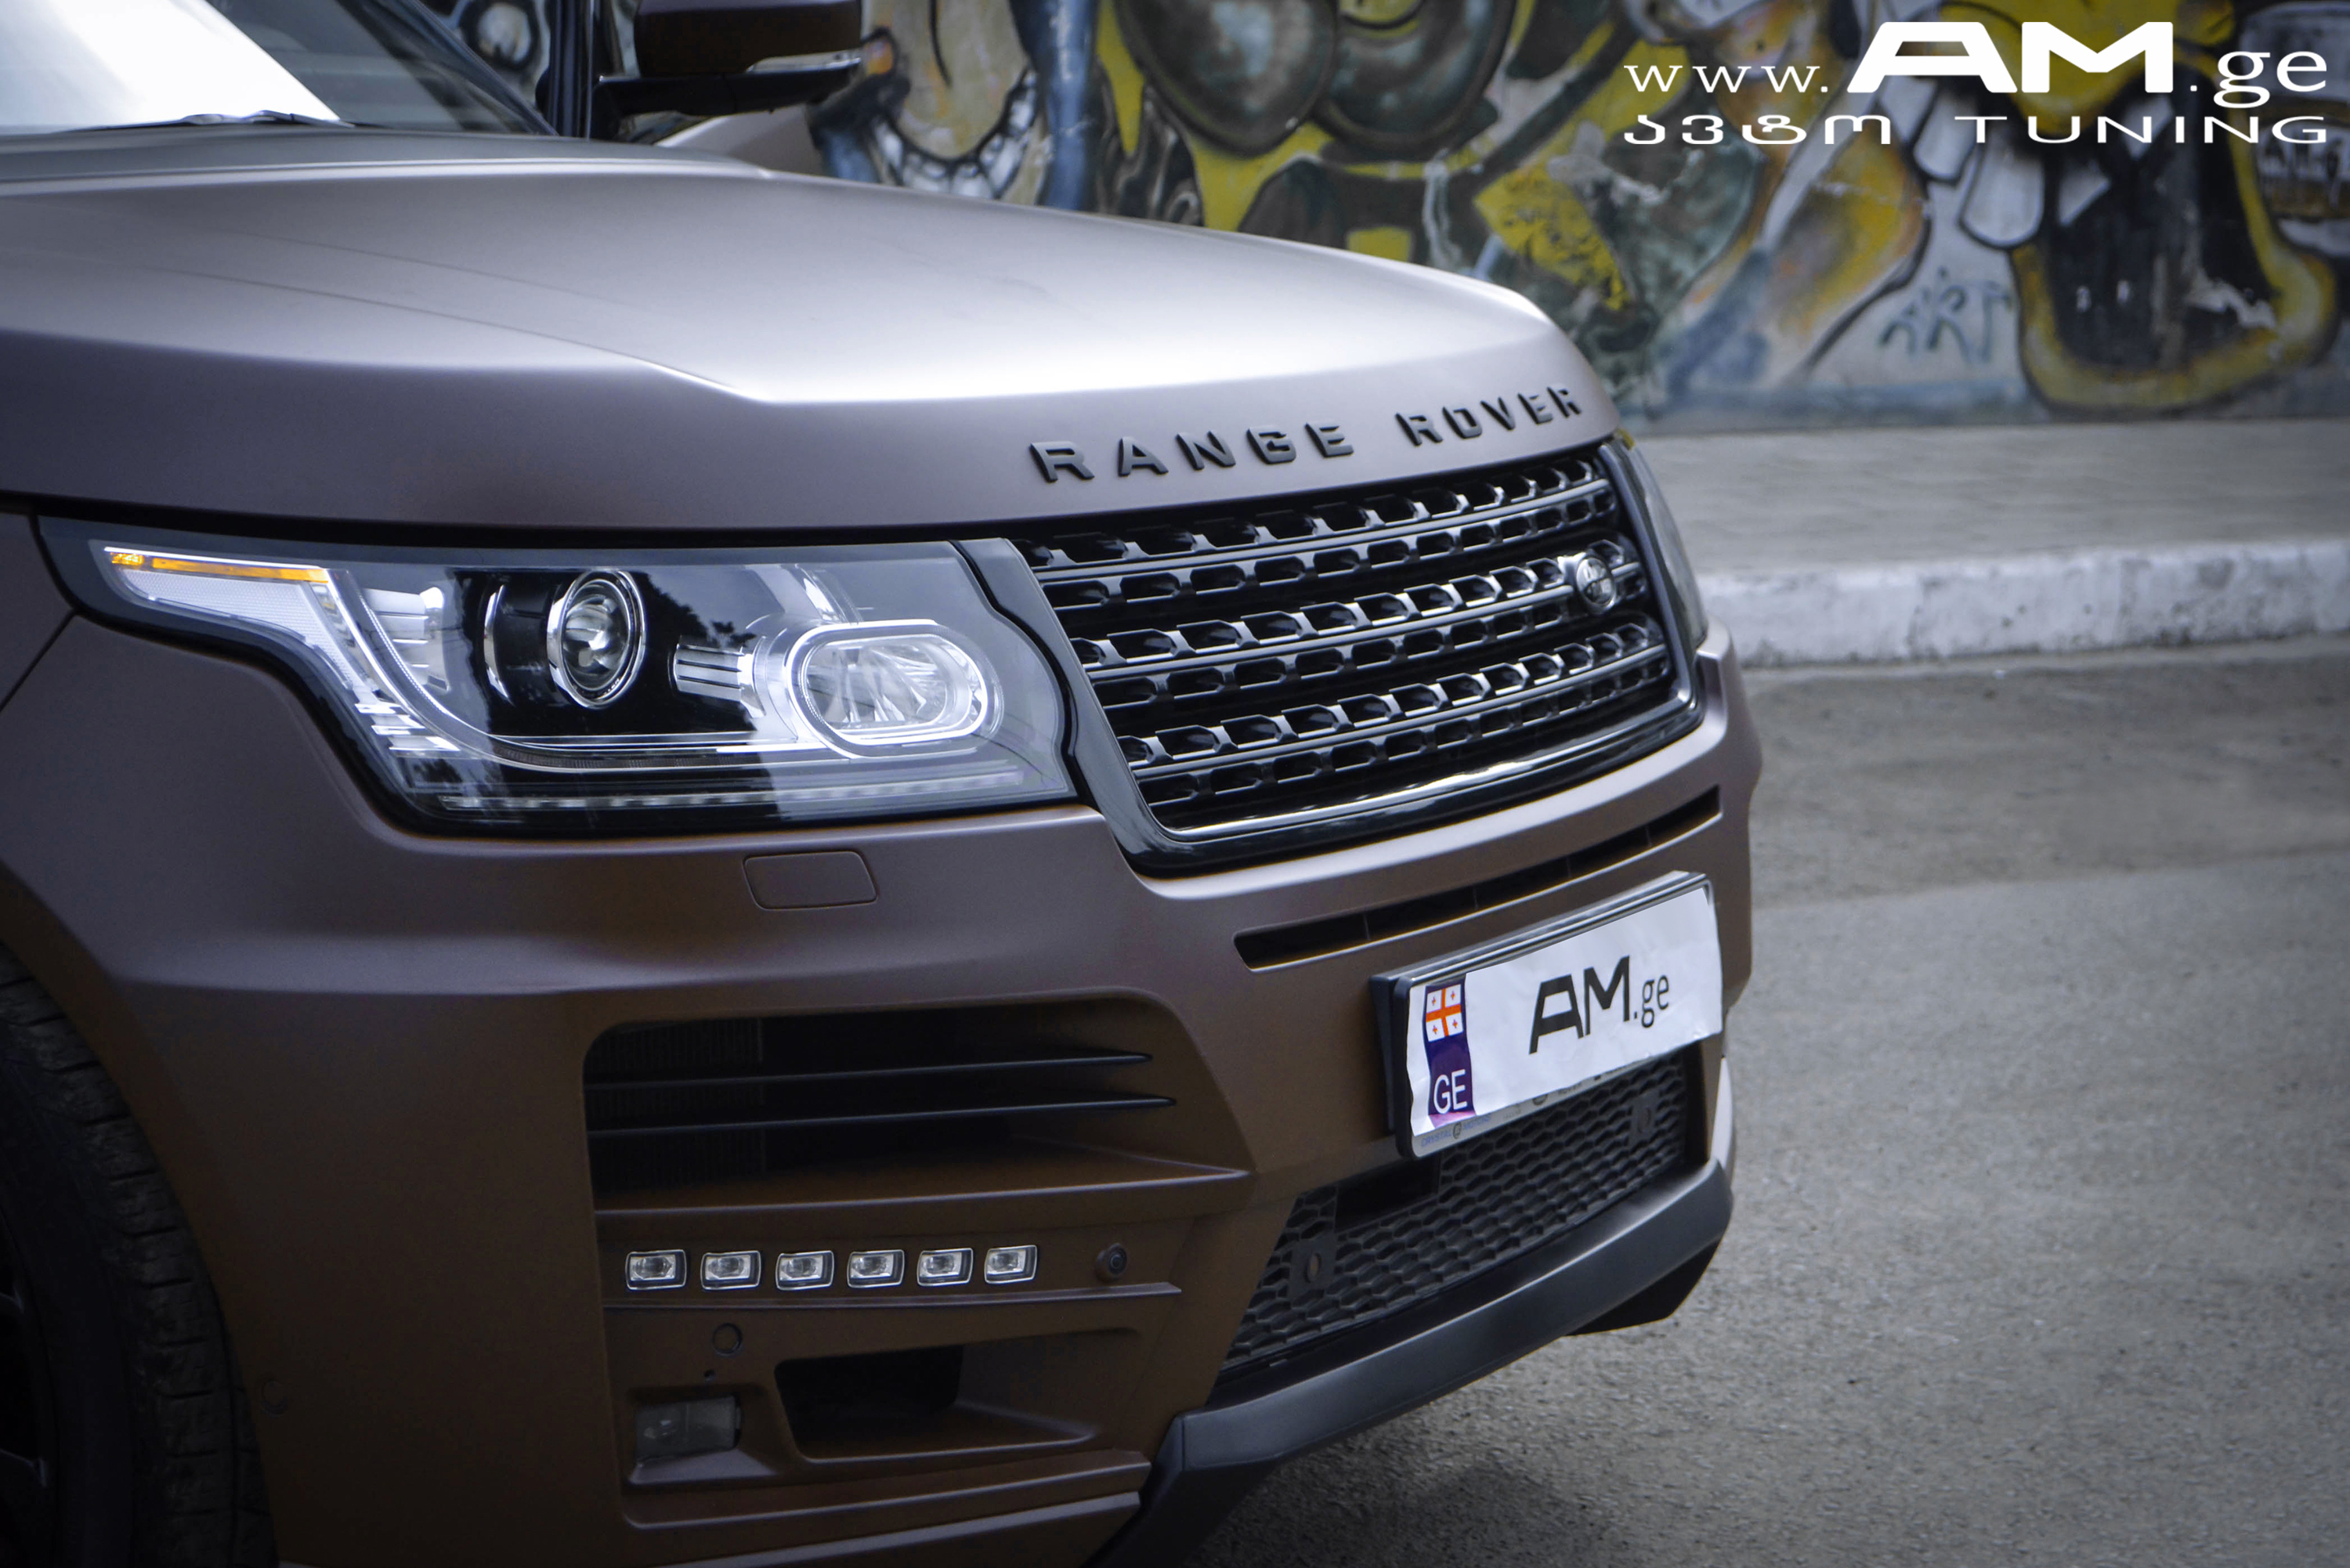 RANGE ROVER BROWN MATTE Car Wrapping AUTOAMGE